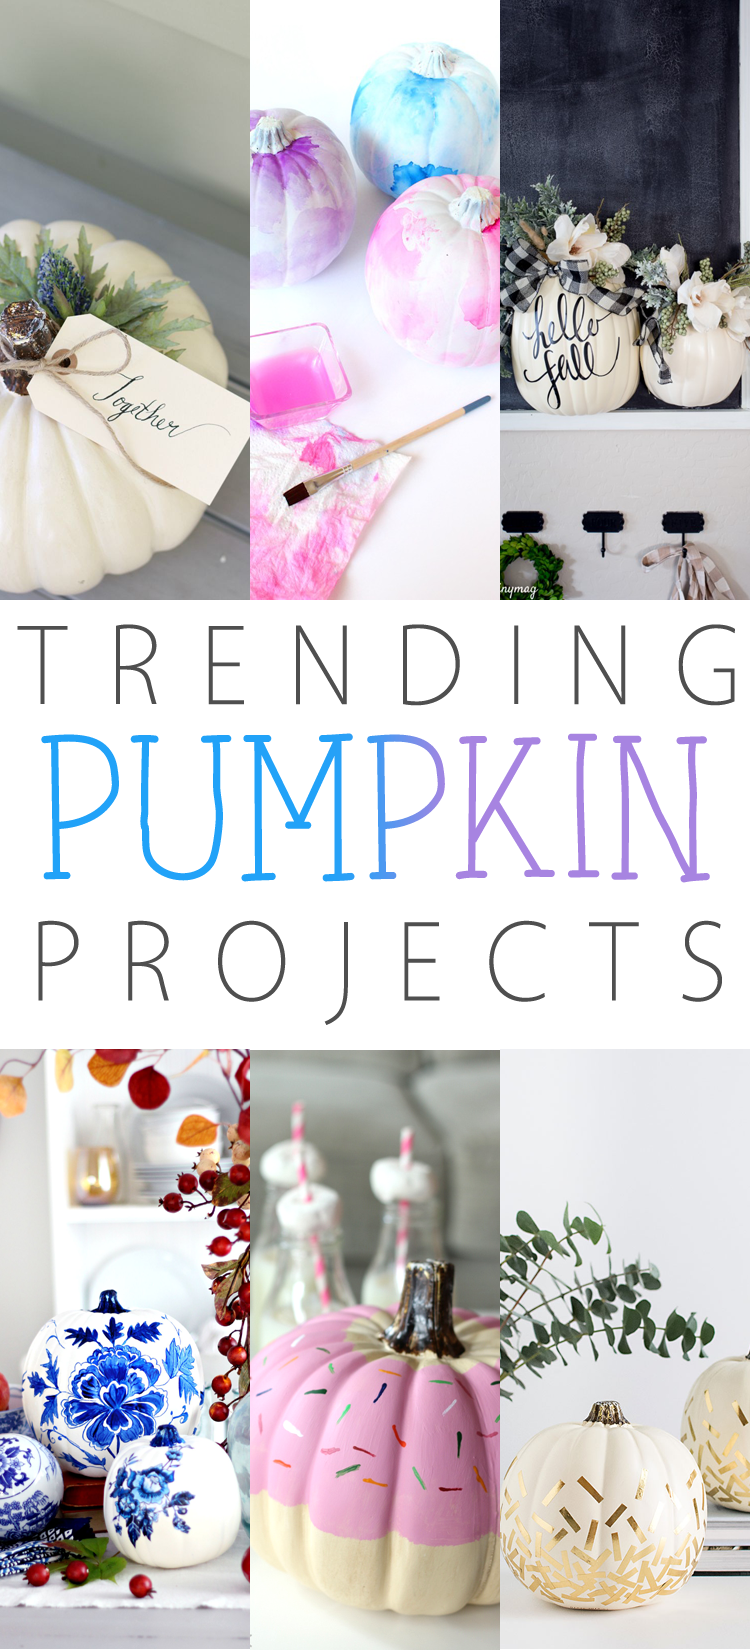 http://thecottagemarket.com/wp-content/uploads/2015/09/pumpkin-TOWER-000.png